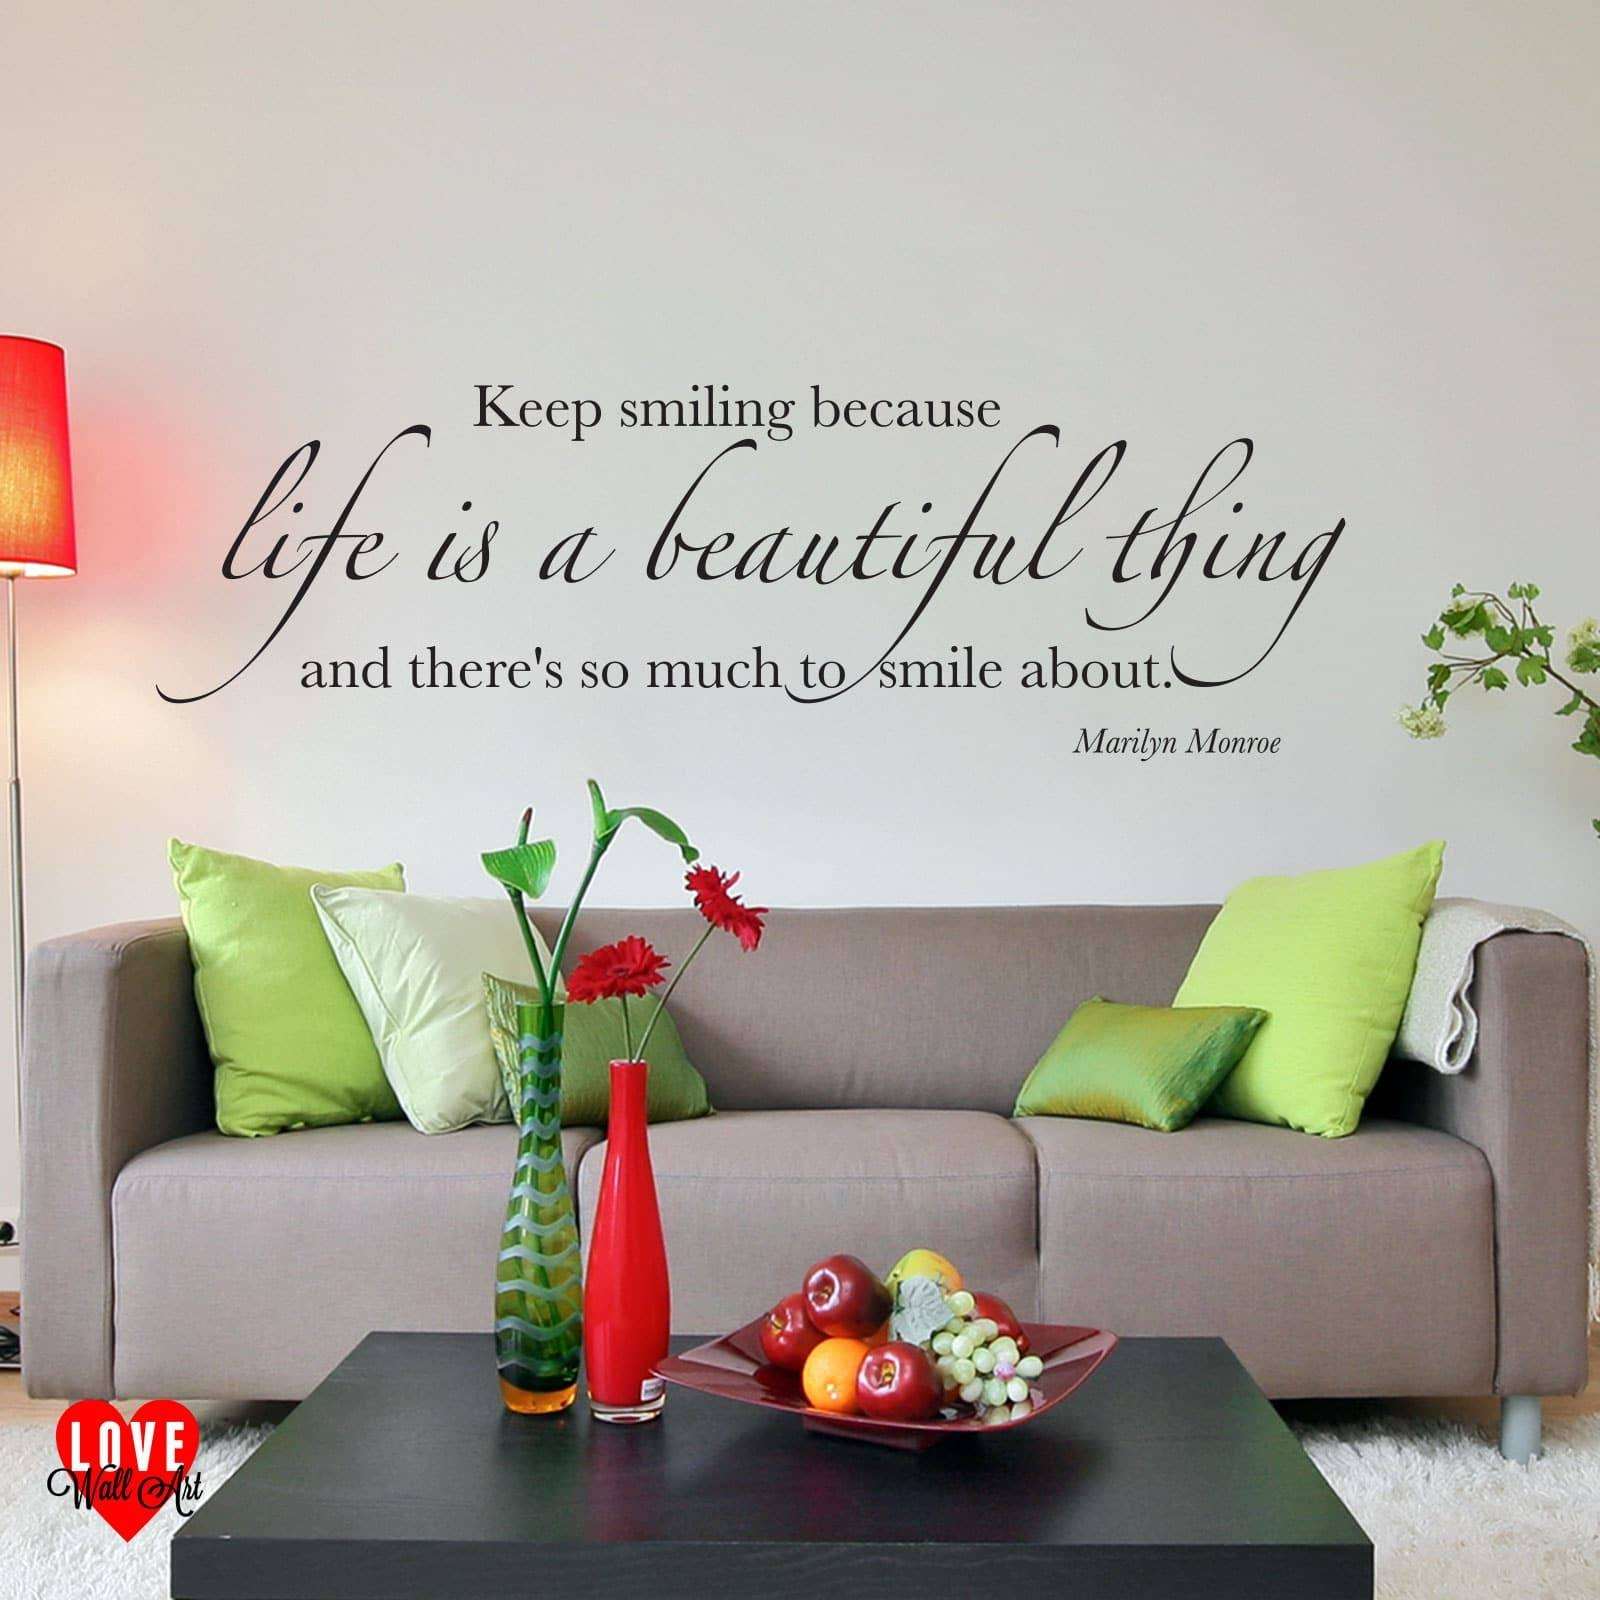 Is A Beautiful Thing Marilyn Monroe Quote Wall Art Sticker Throughout 2018 Marilyn Monroe Wall Art (View 7 of 25)